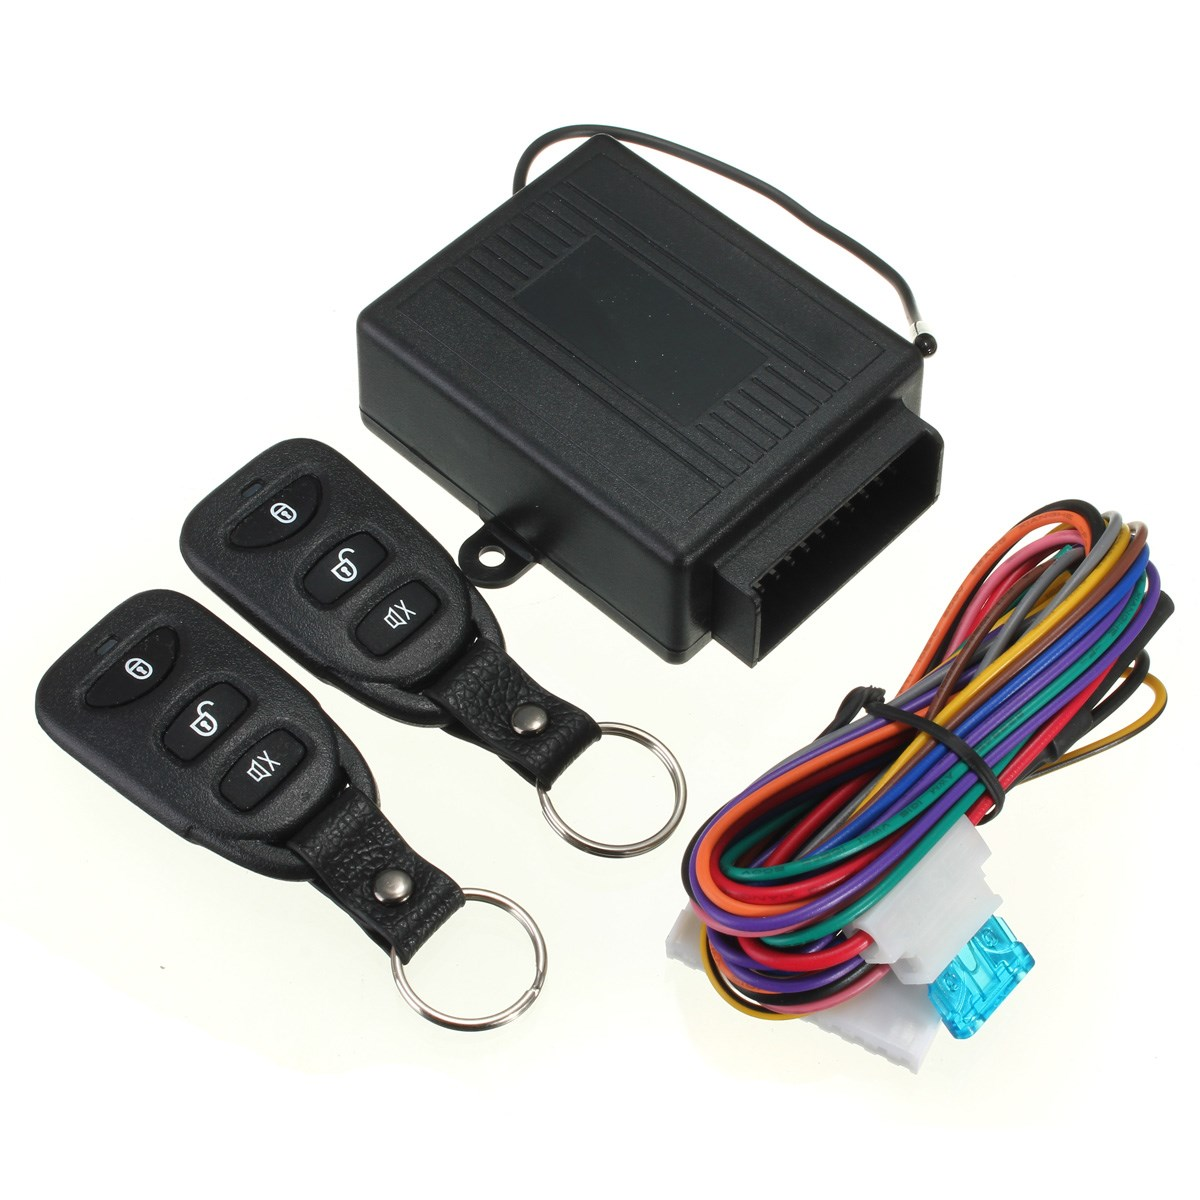 Hot Sale Keyless Entry System Universal Car Kit Remote Control Central Lock+ 2 Remote Controllers + User Manual +Wire(China (Mainland))